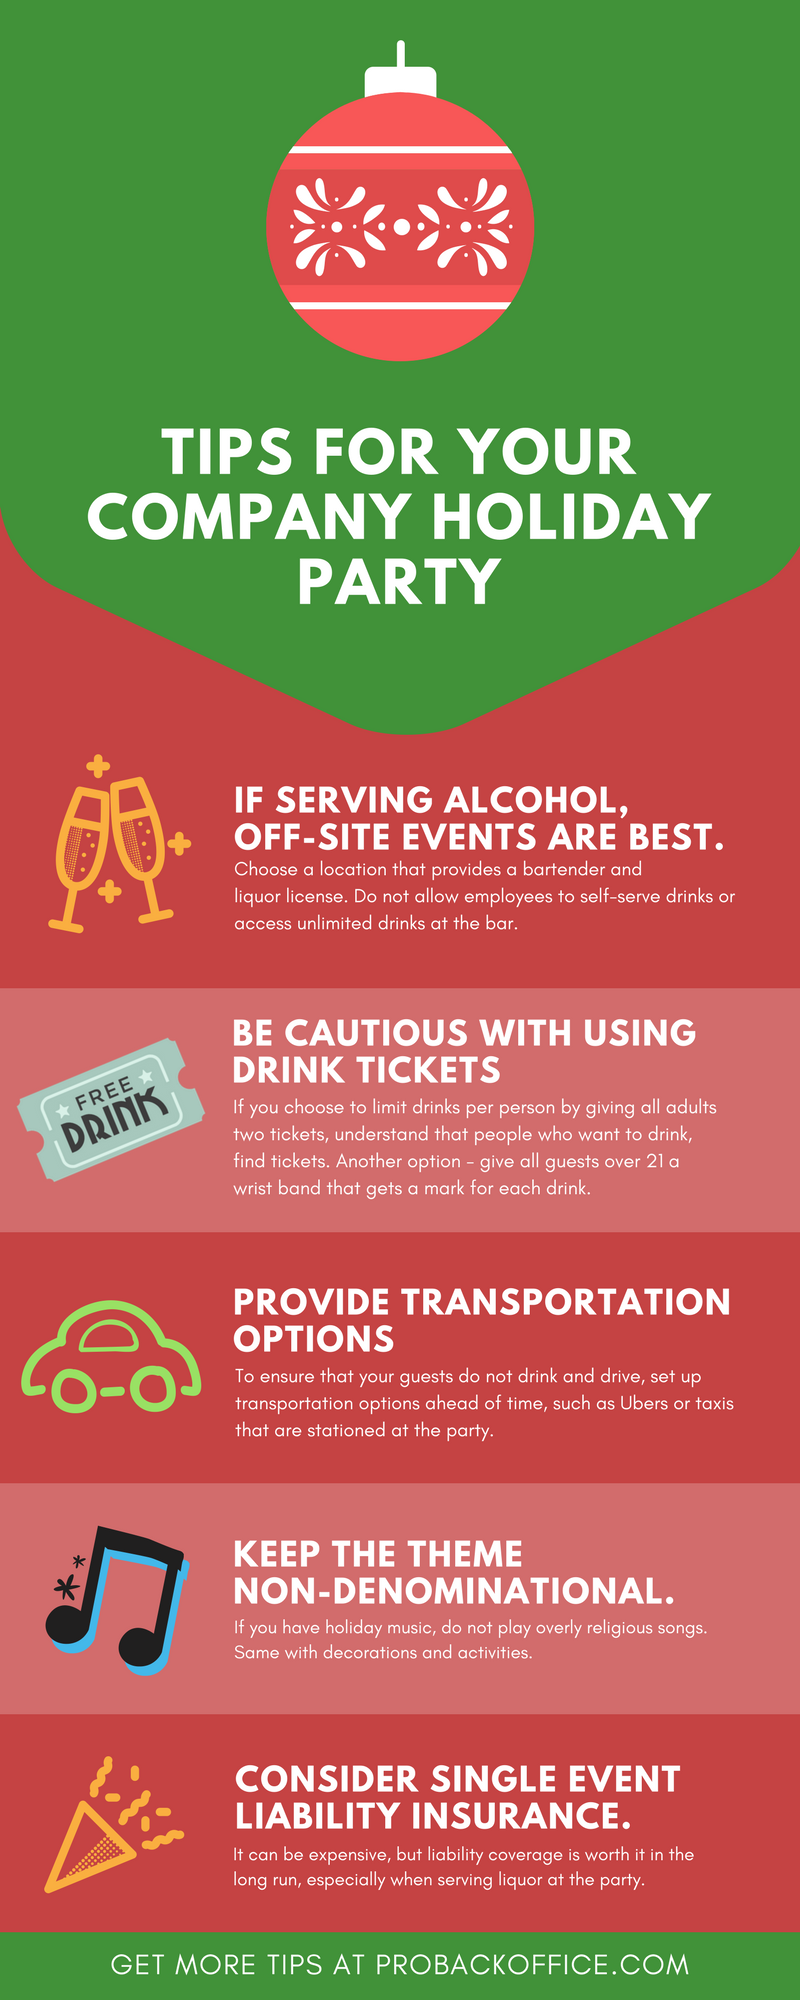 tips for hosting a company holiday party pro back office